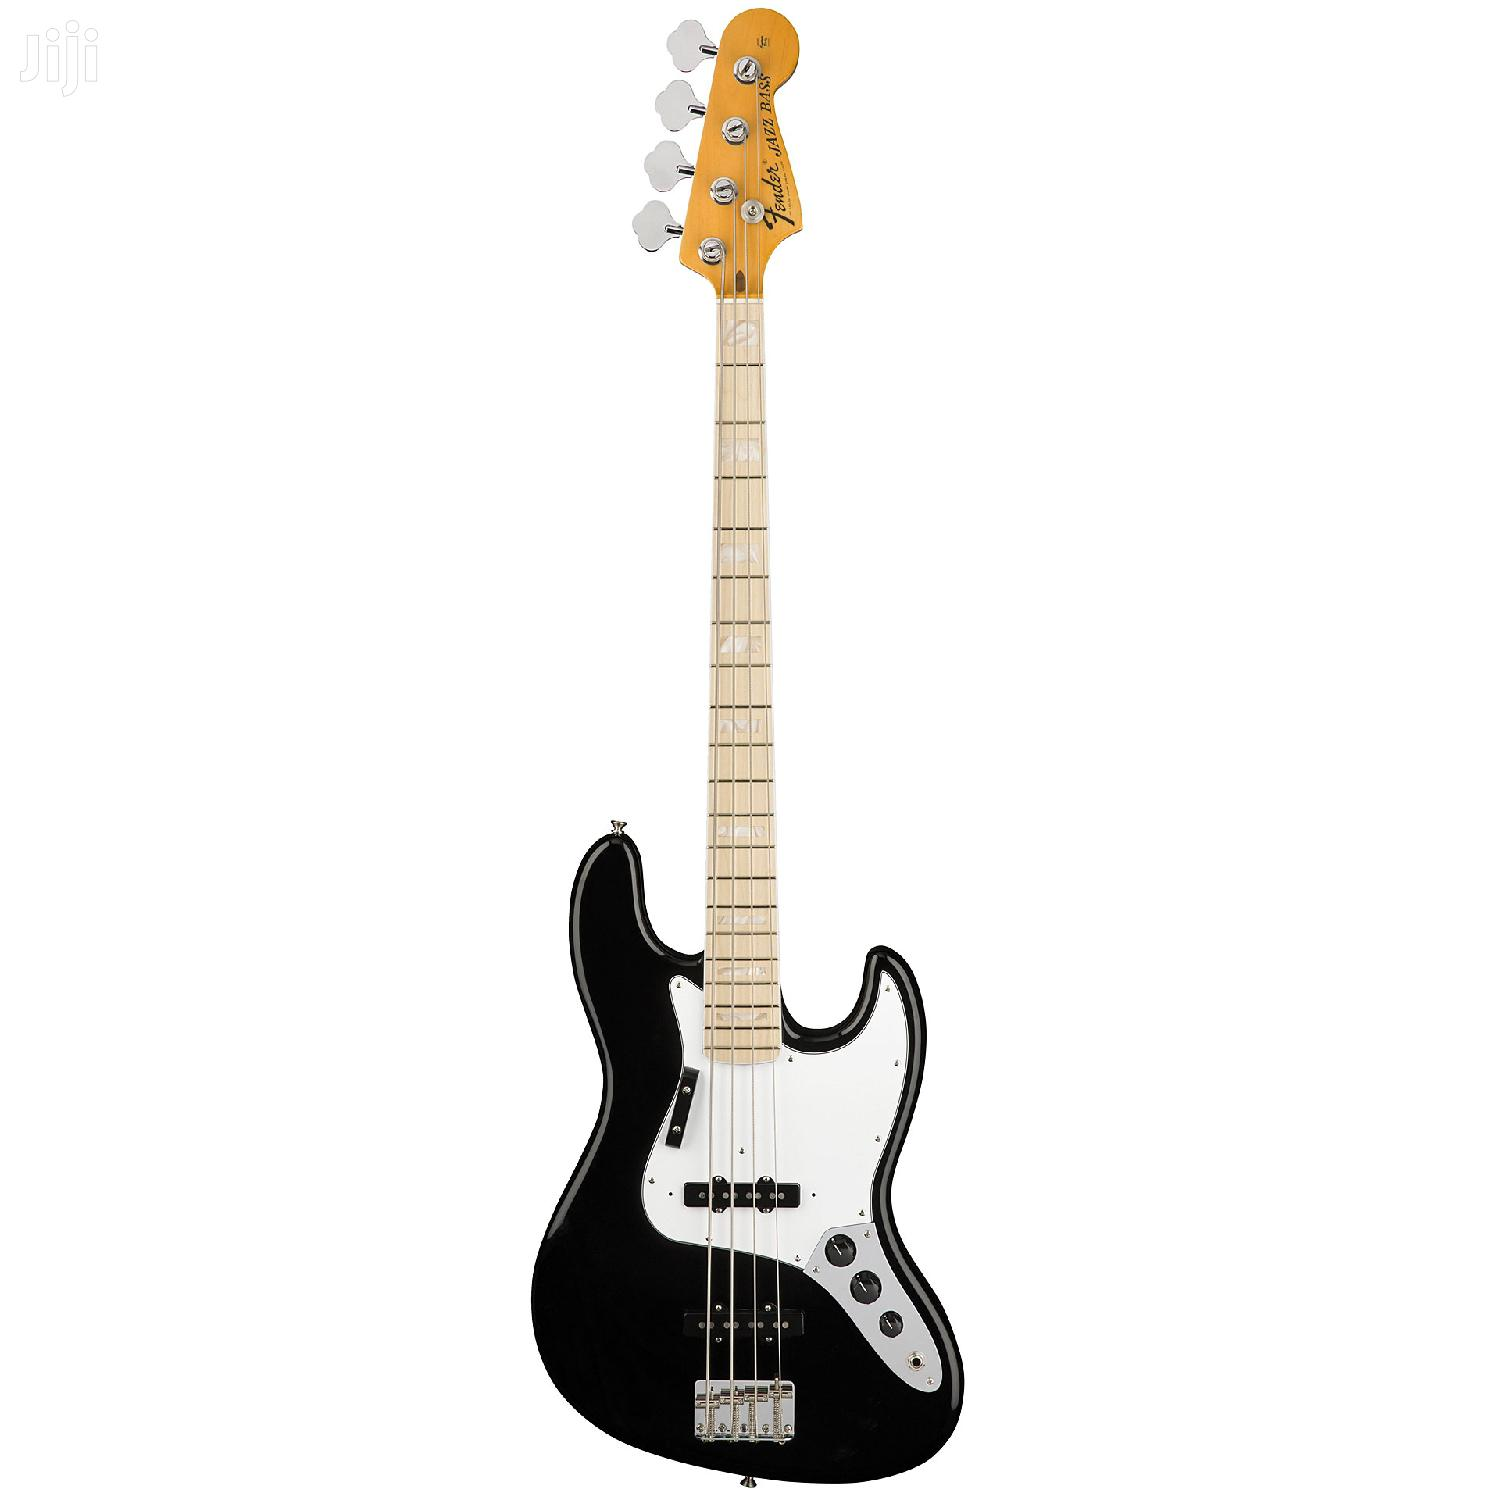 BASS GUITAR 4strings Black